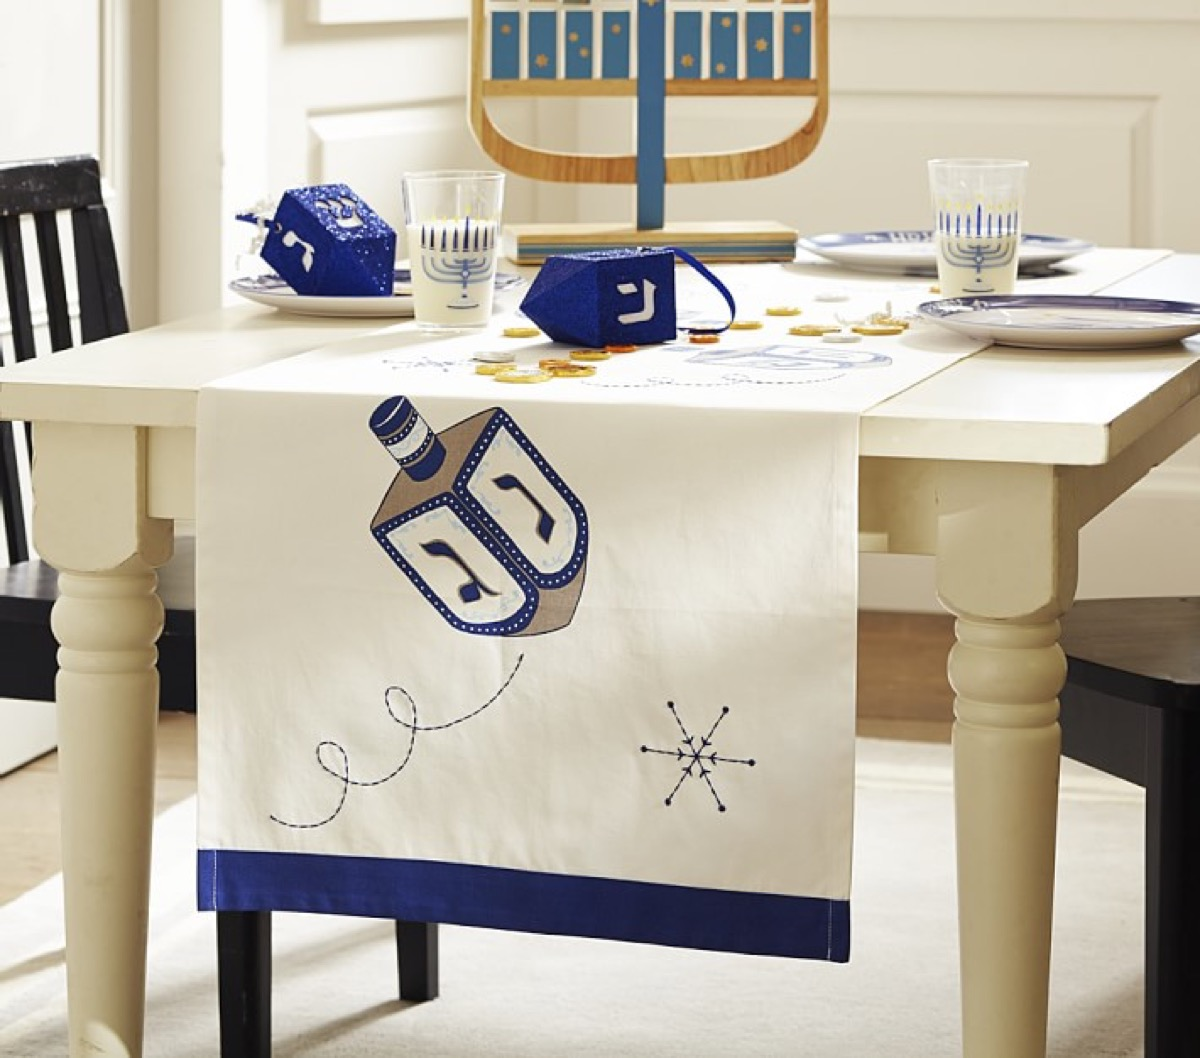 white table runner with dreidel on it and menorahs on the table, hanukkah decorations